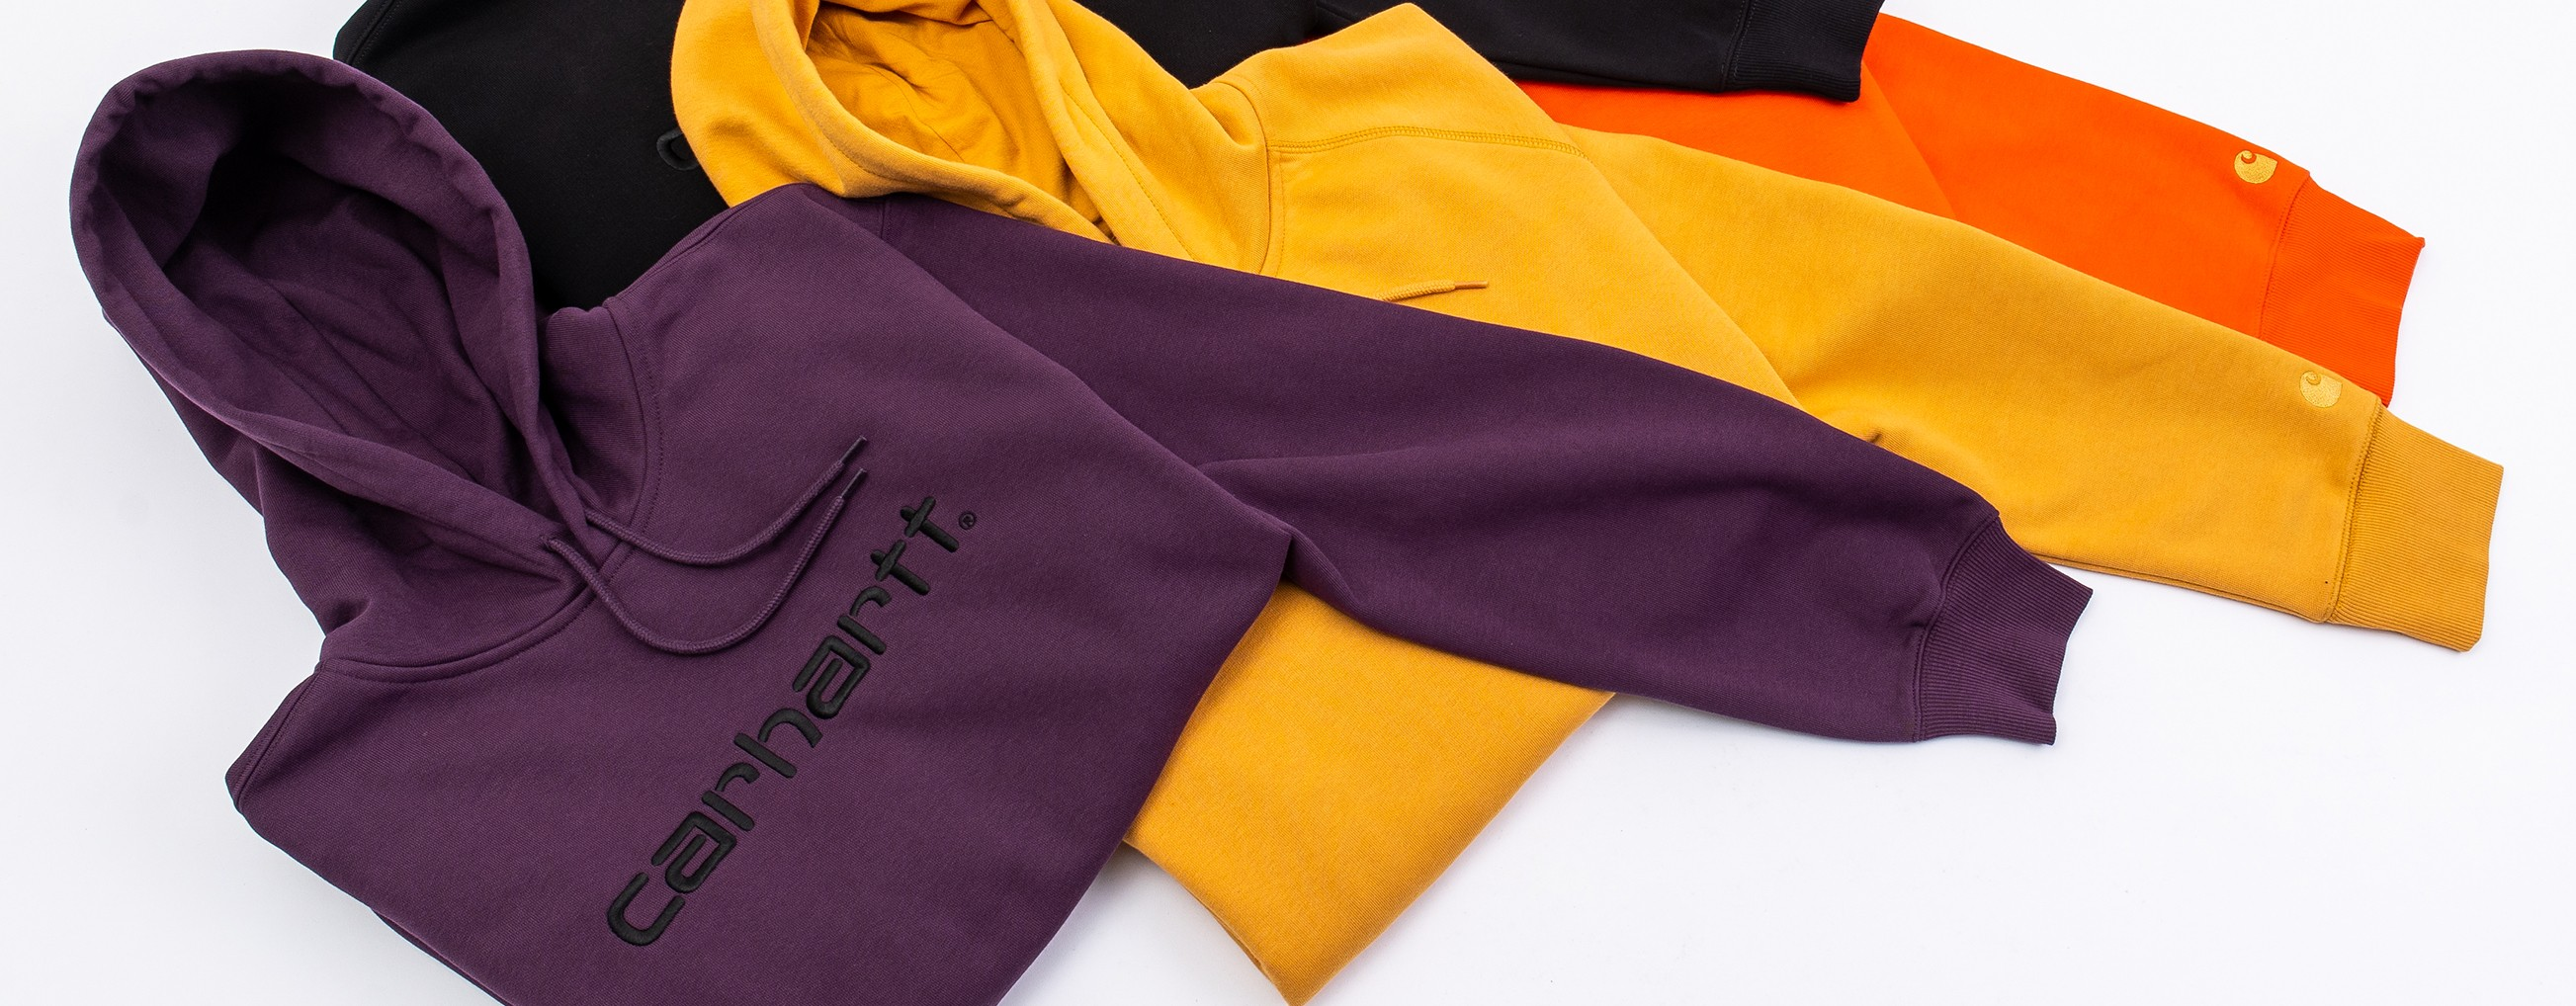 CARHARTT ESSENTIALS NEW DELIVERY